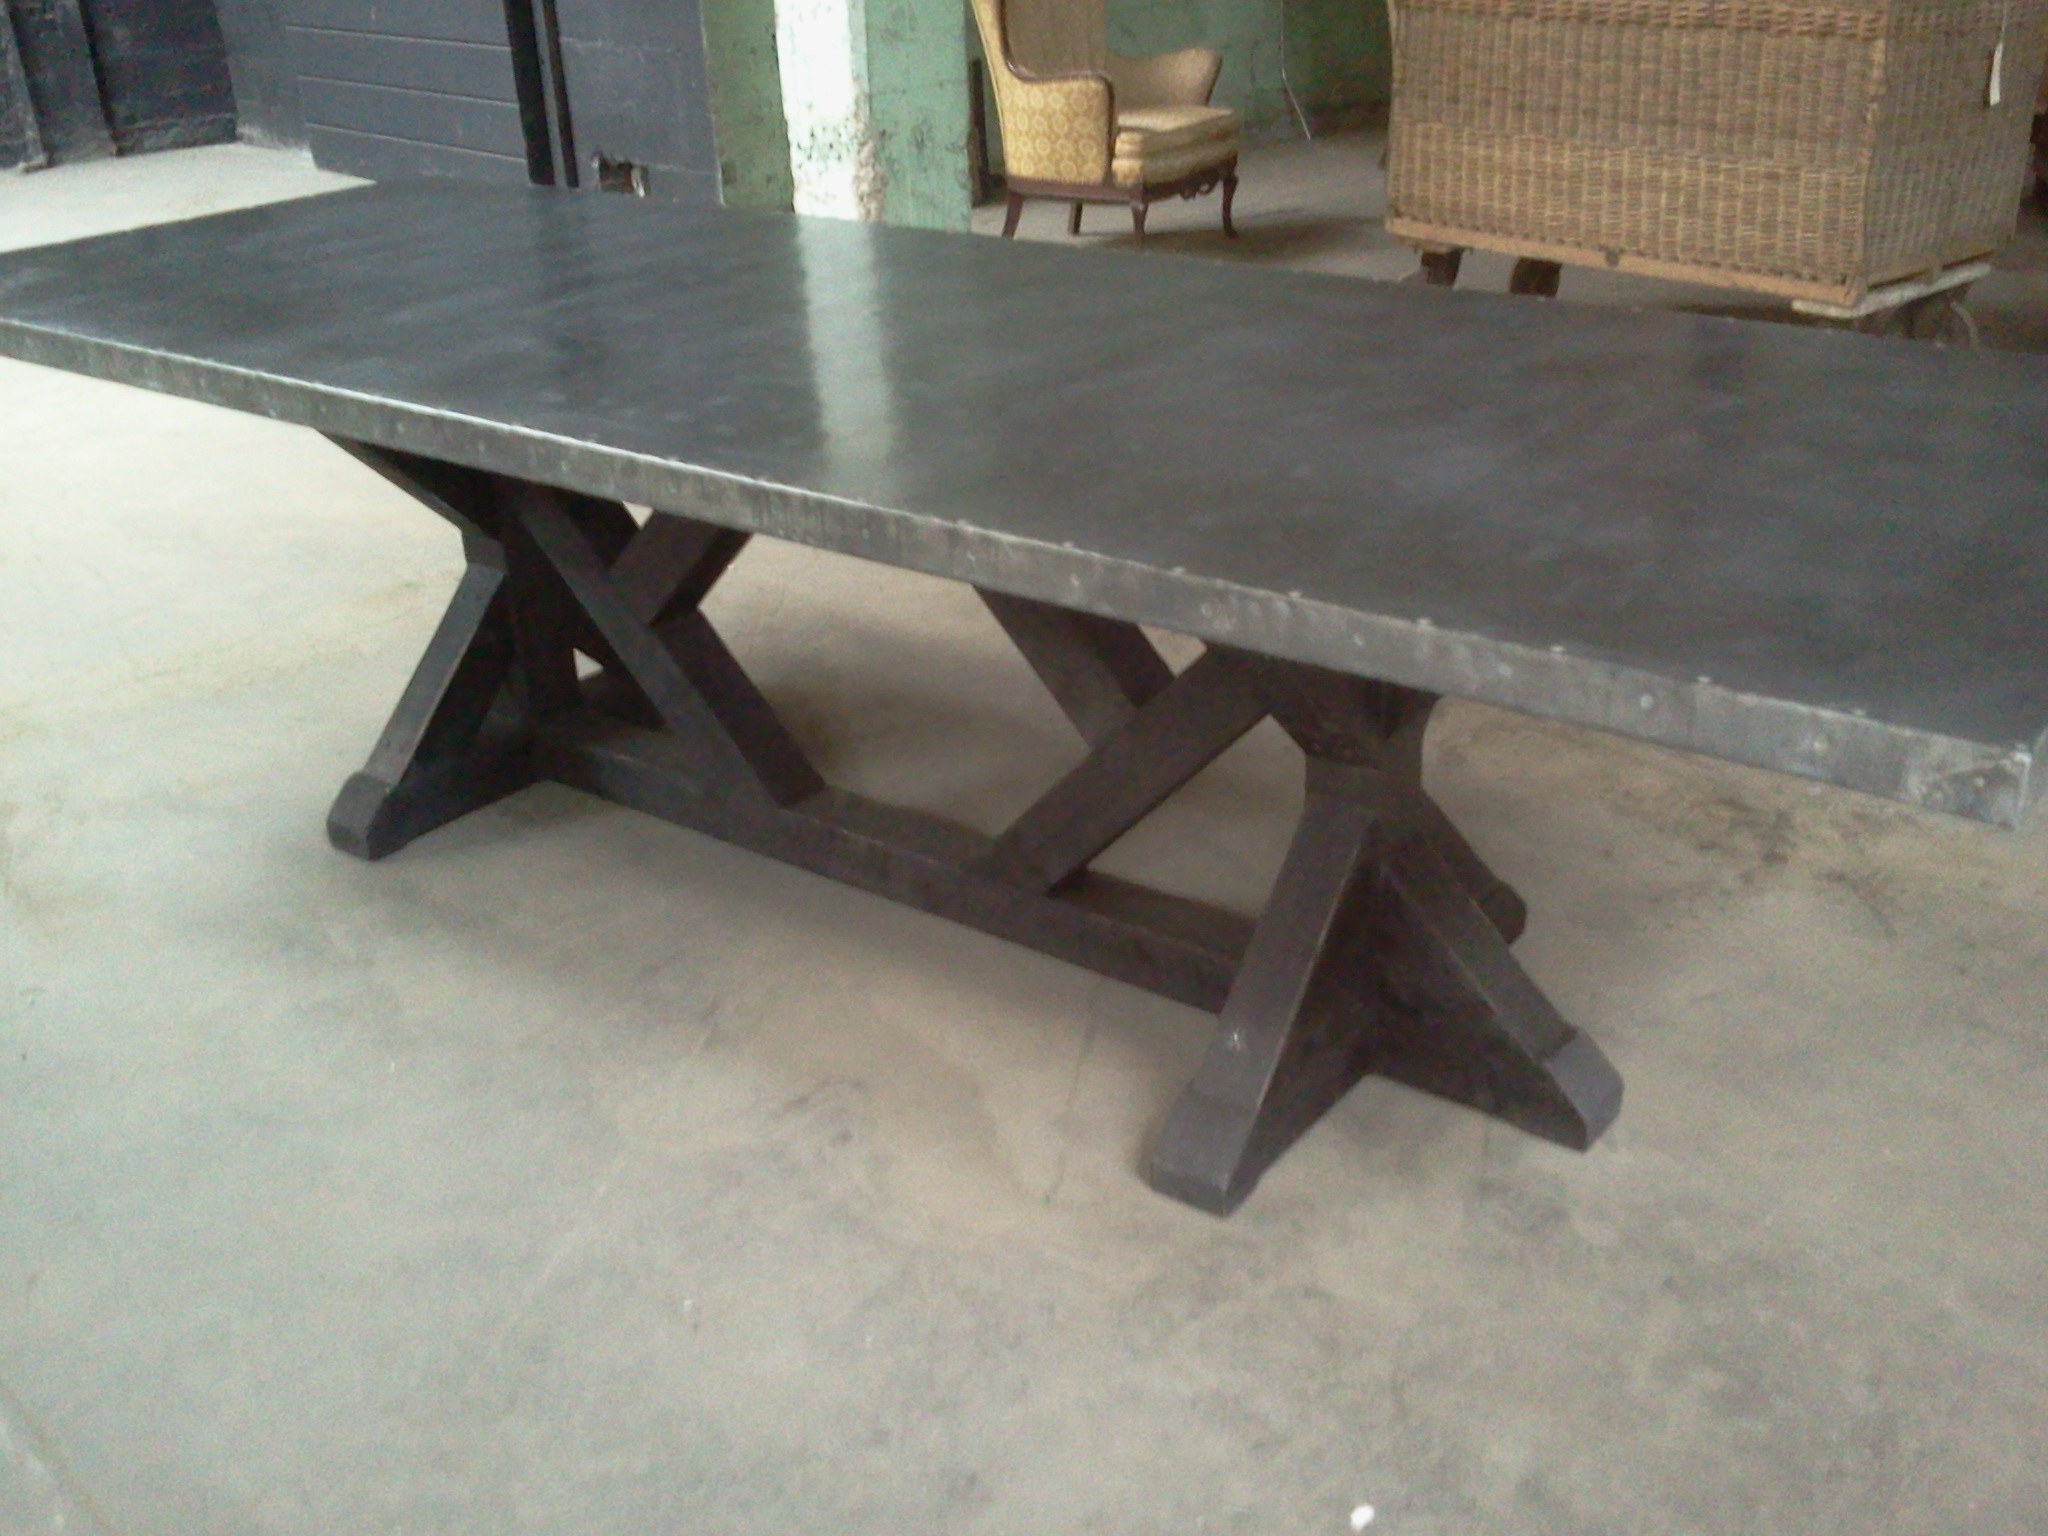 Superieur Giant Zinc Top Table. 2012 06 20 15.13.01